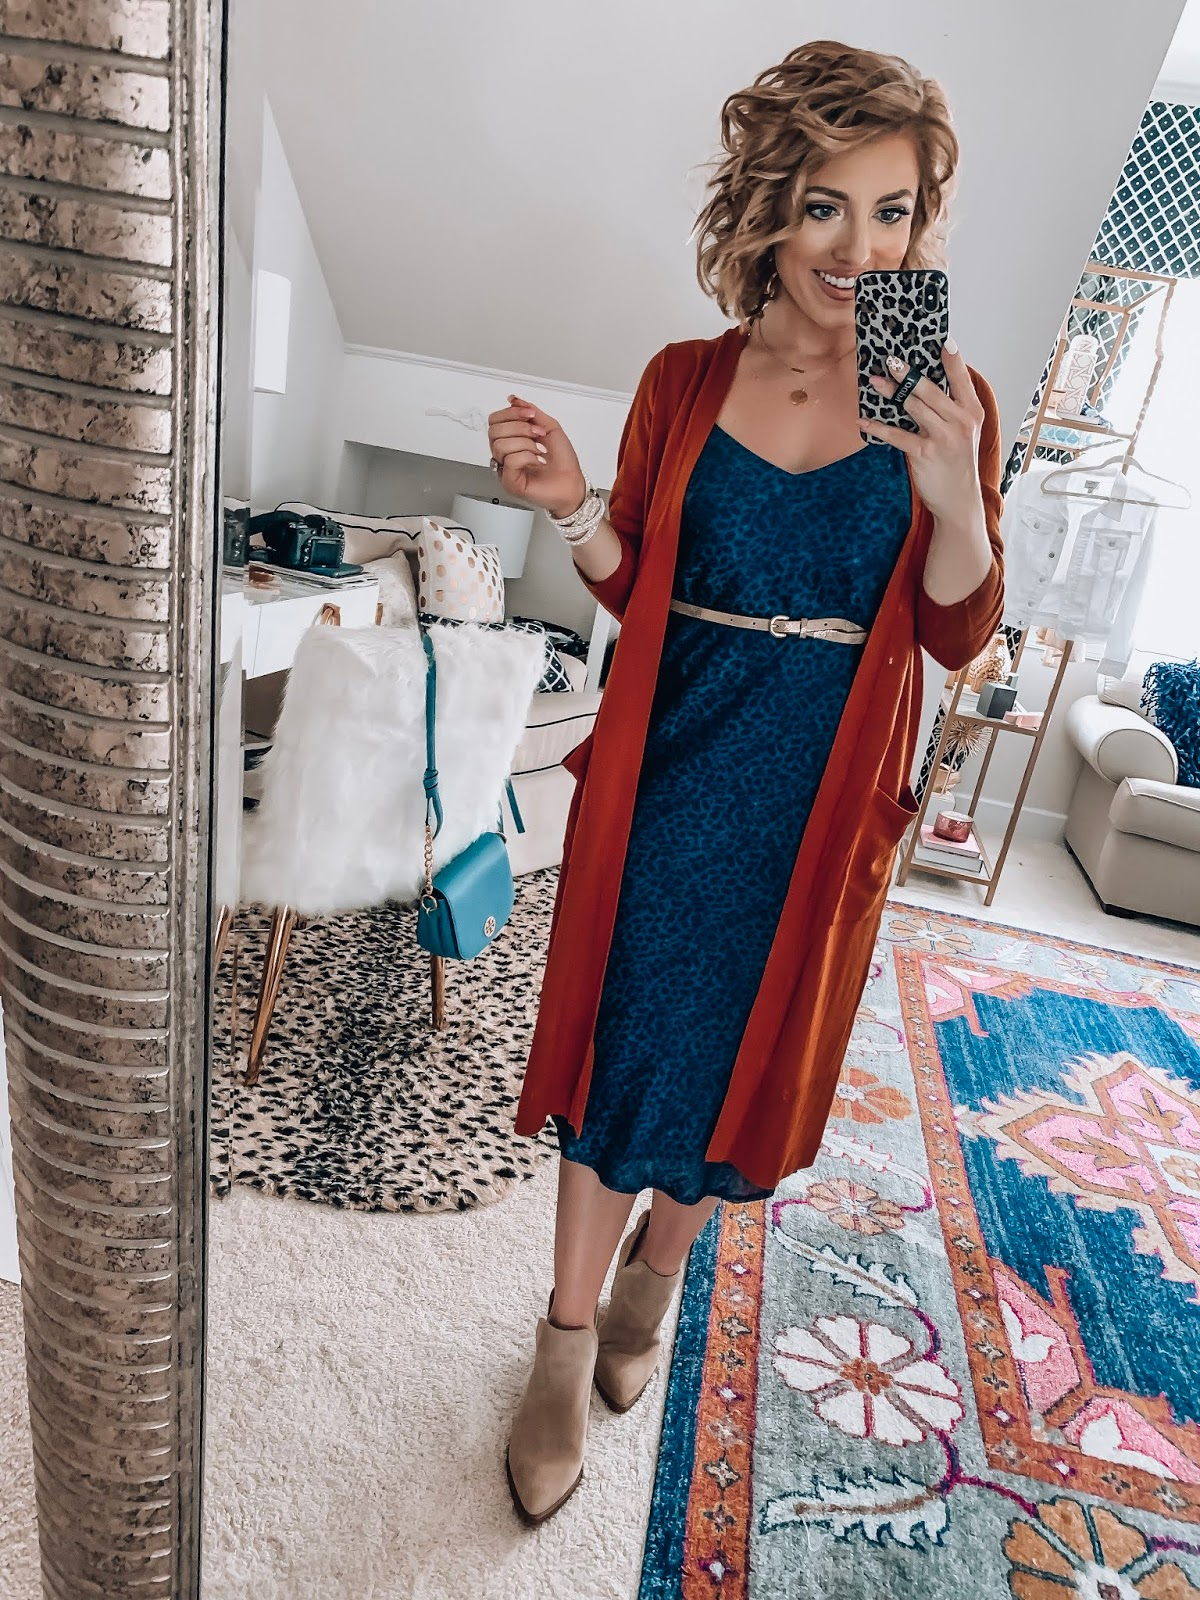 Target Fall Finds: Part One - Under $30 Navy Leopard Midi Dress + Under $30 Rust Cardigan - Something Delightful Blog